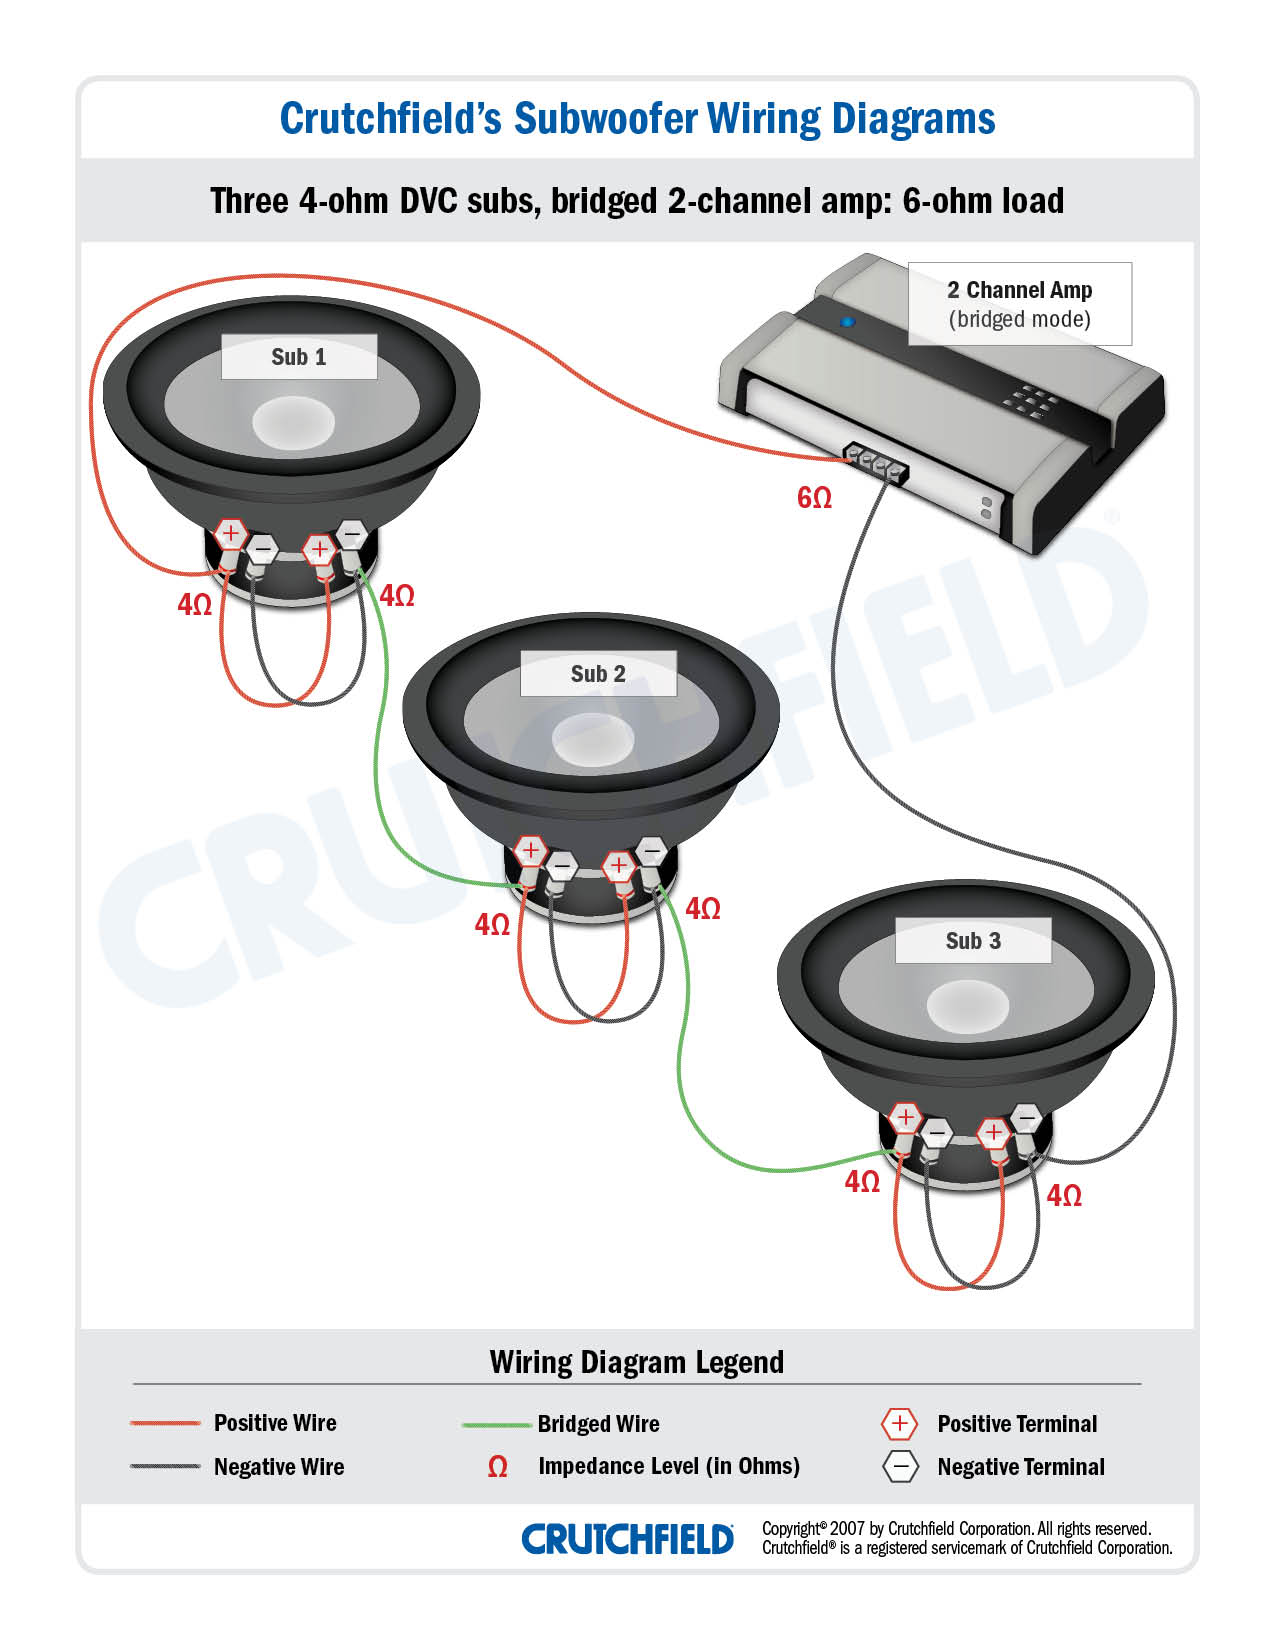 3 DVC 4 ohm 2 ch subwoofer wiring diagrams crunch amp wiring diagram at nearapp.co